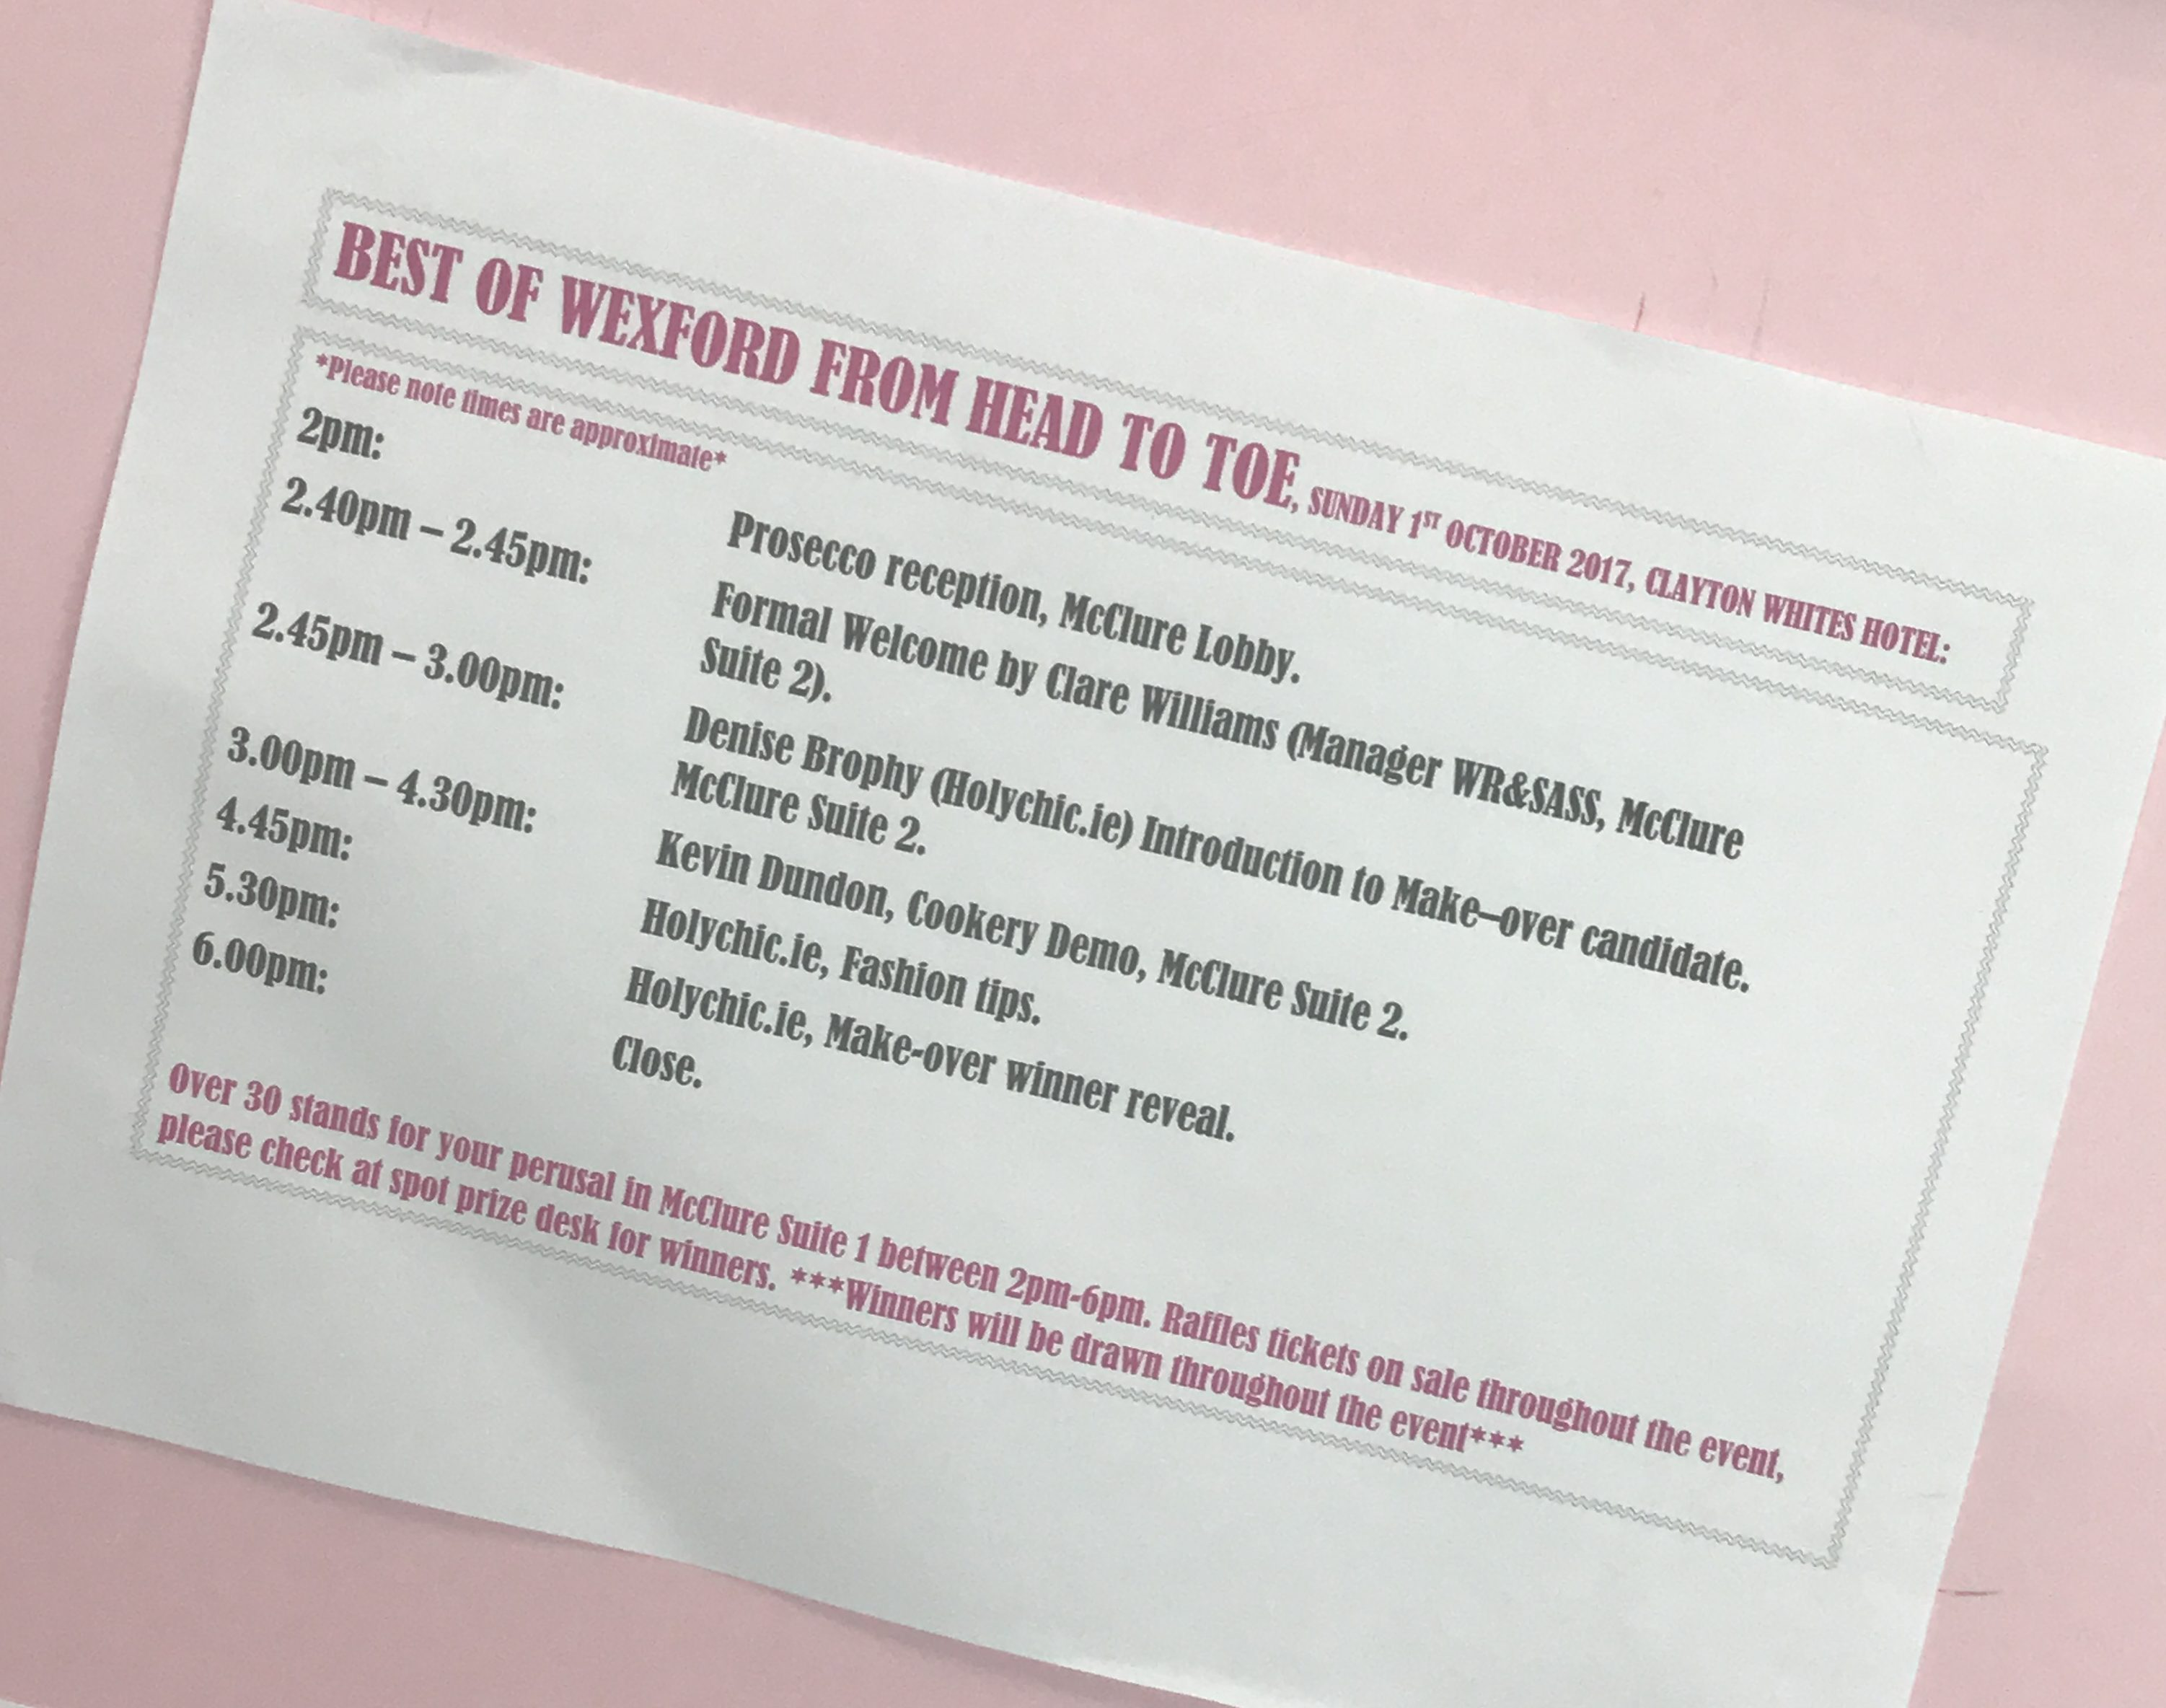 'Best of Wexford' event